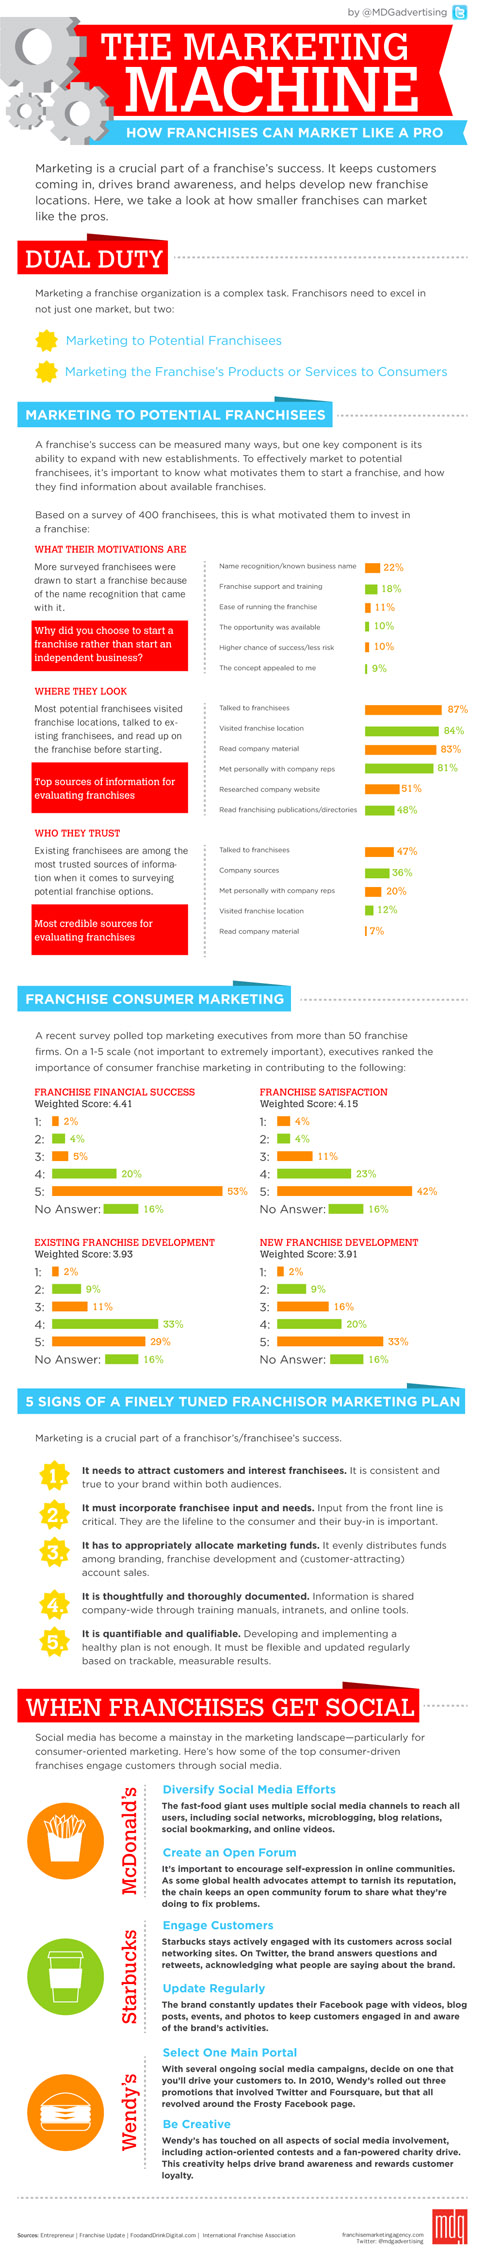 Infographic: The Marketing Machine for Franchises